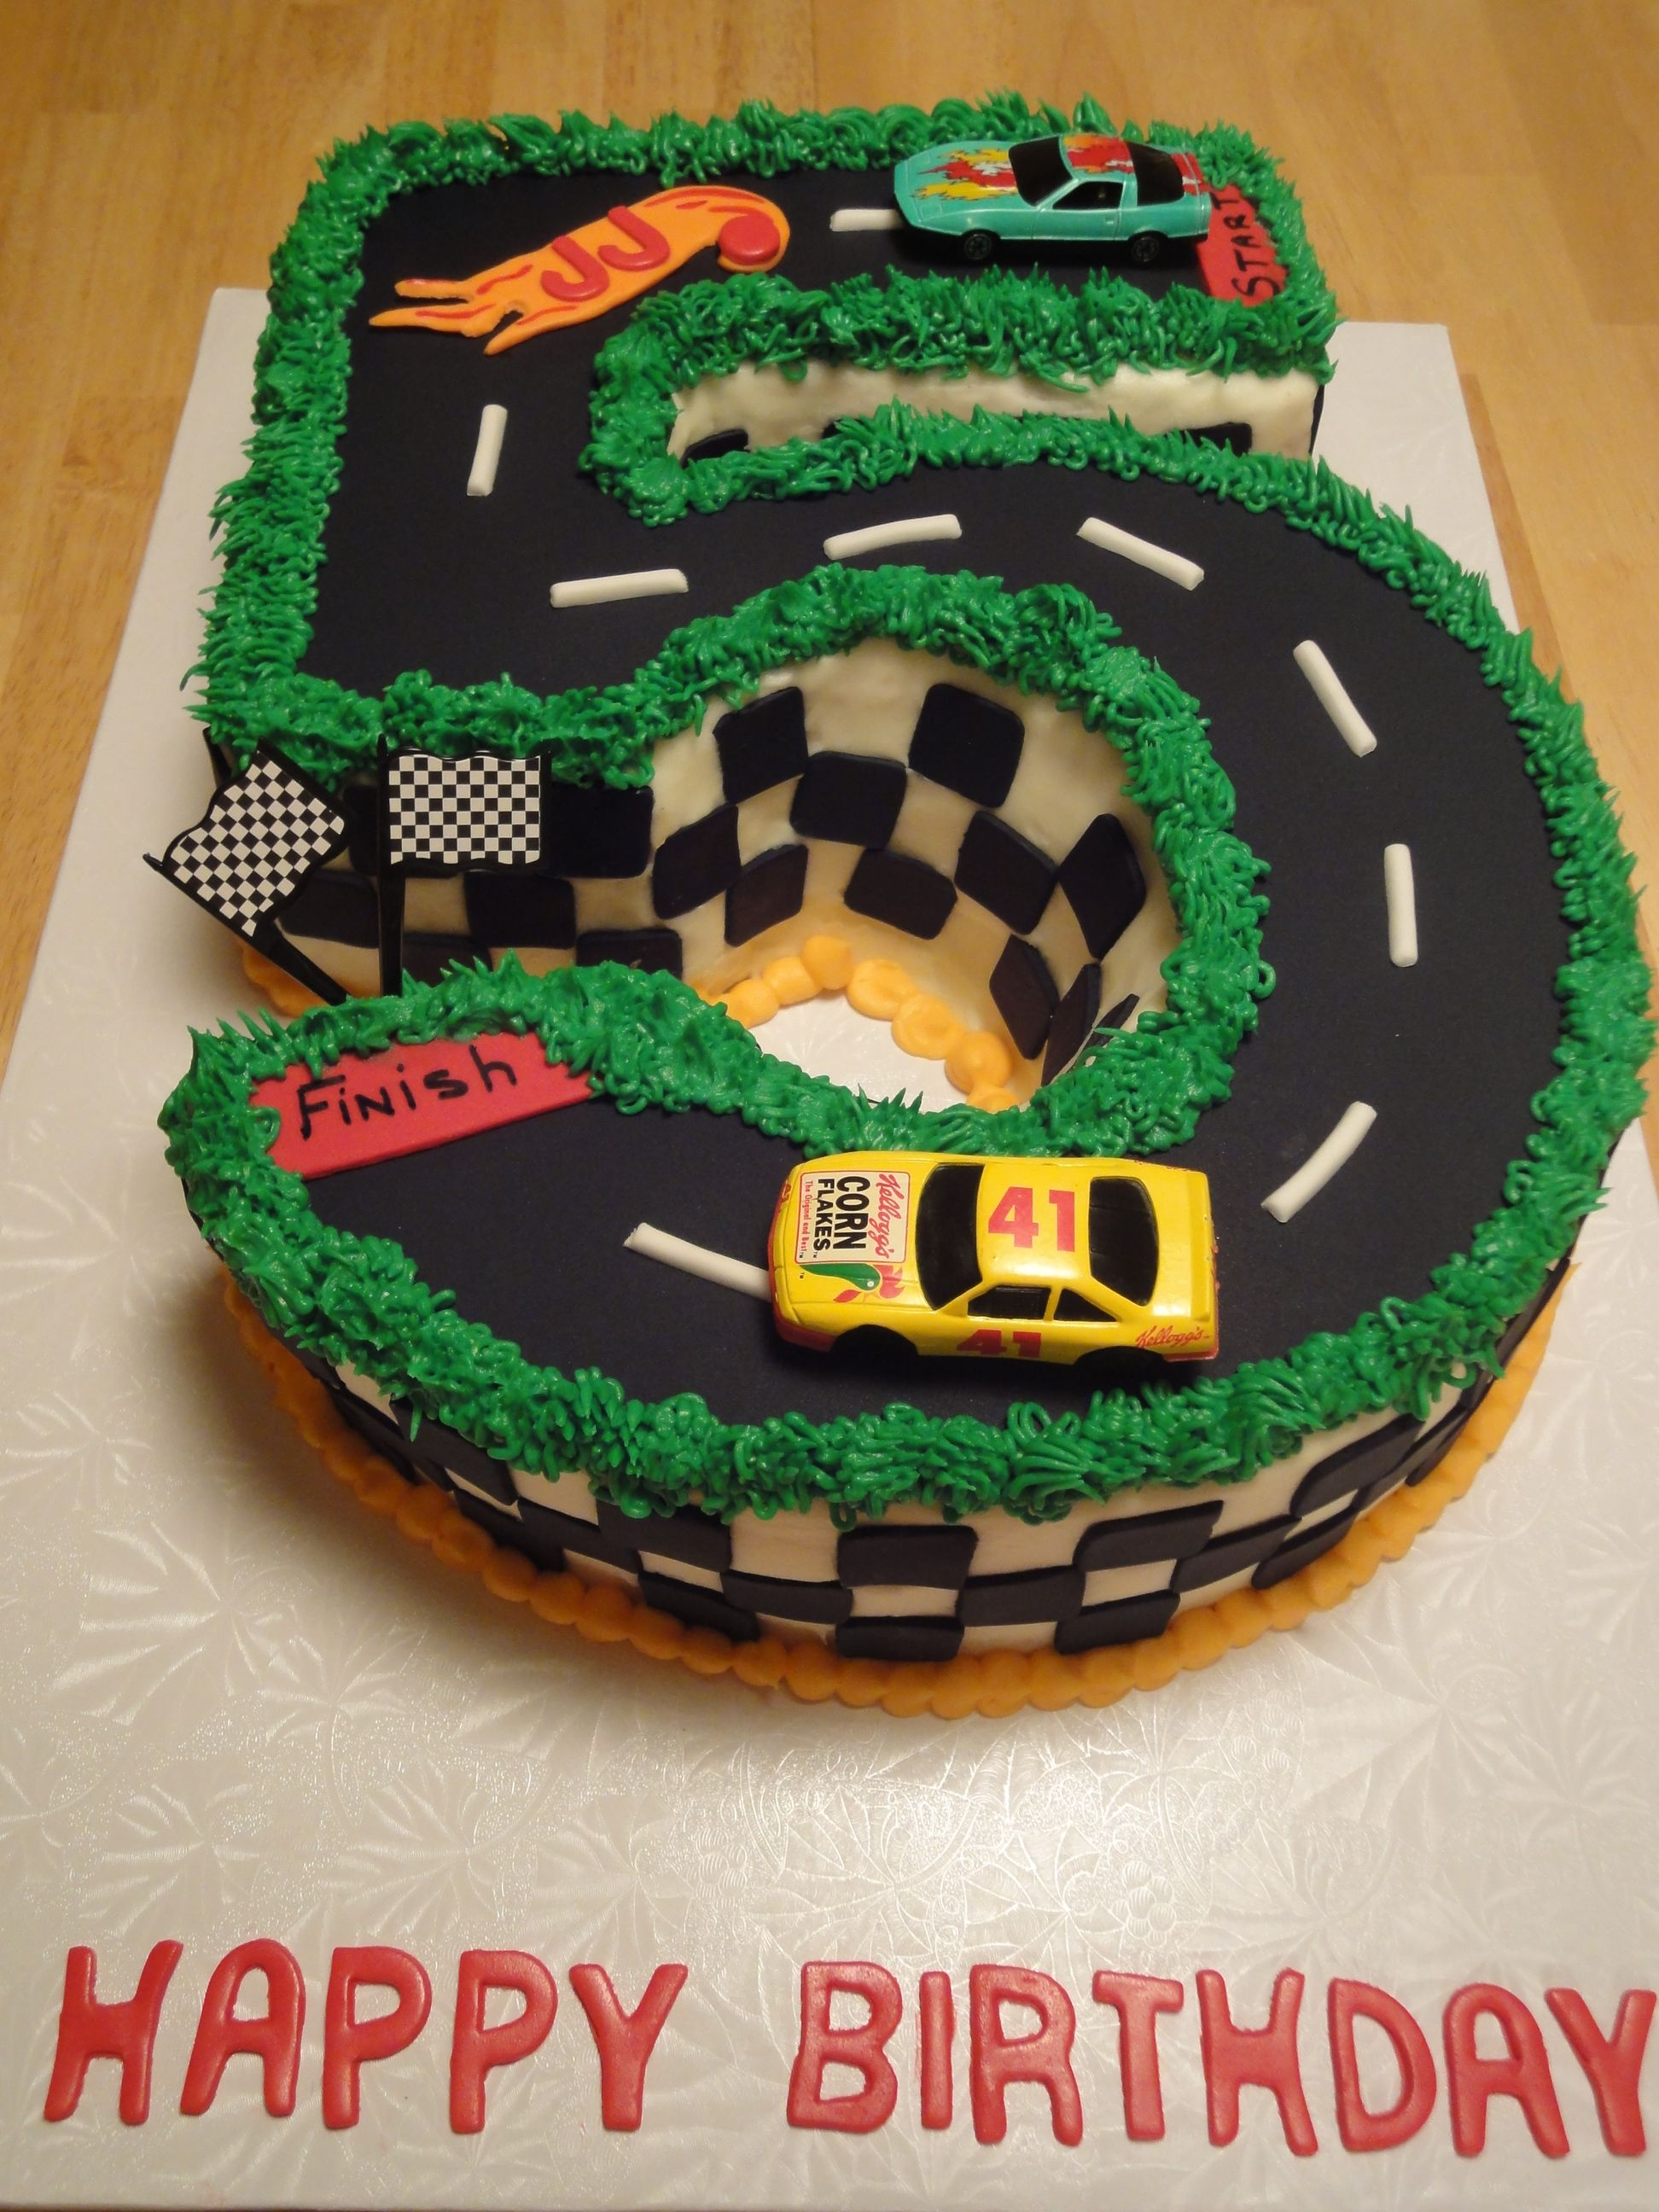 Cake Ideas For 5 Year Old Boy Birthday : Happy Birthday to a 5 year old boy! Hot wheels cake ...